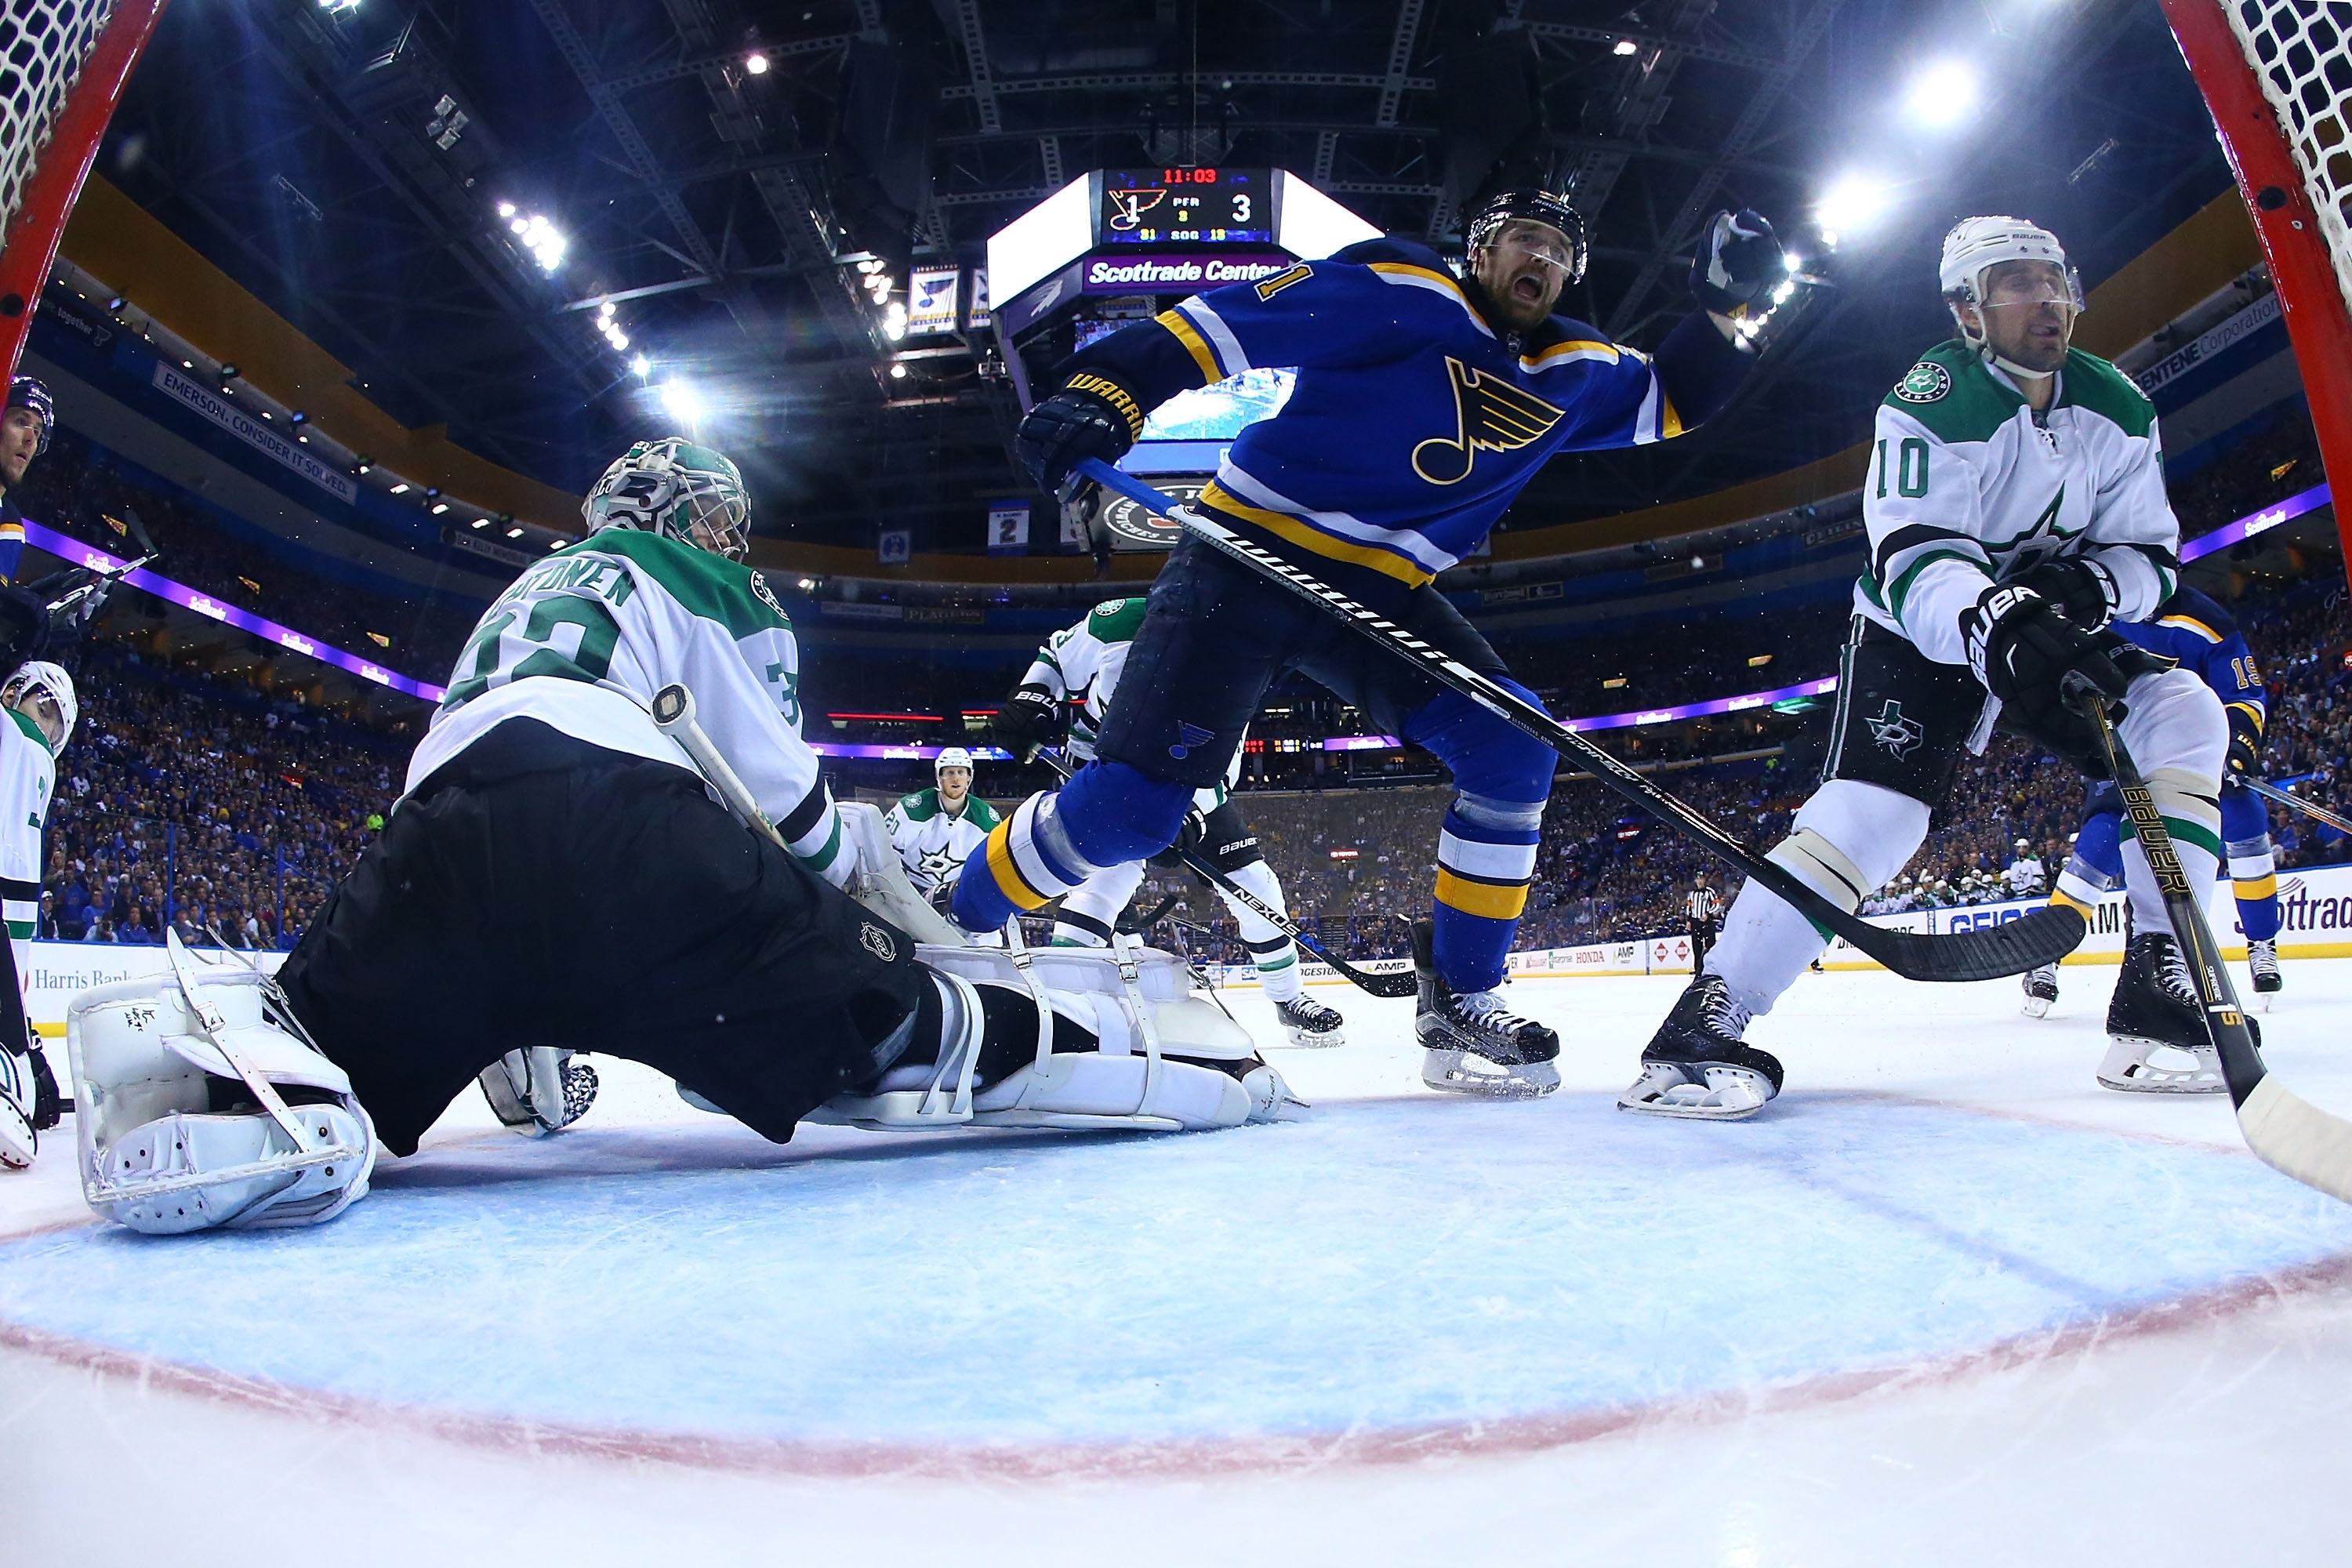 Goals in the NHL have been hard to come by in recent years, and perhaps even harder in the Stanley Cup playoffs.